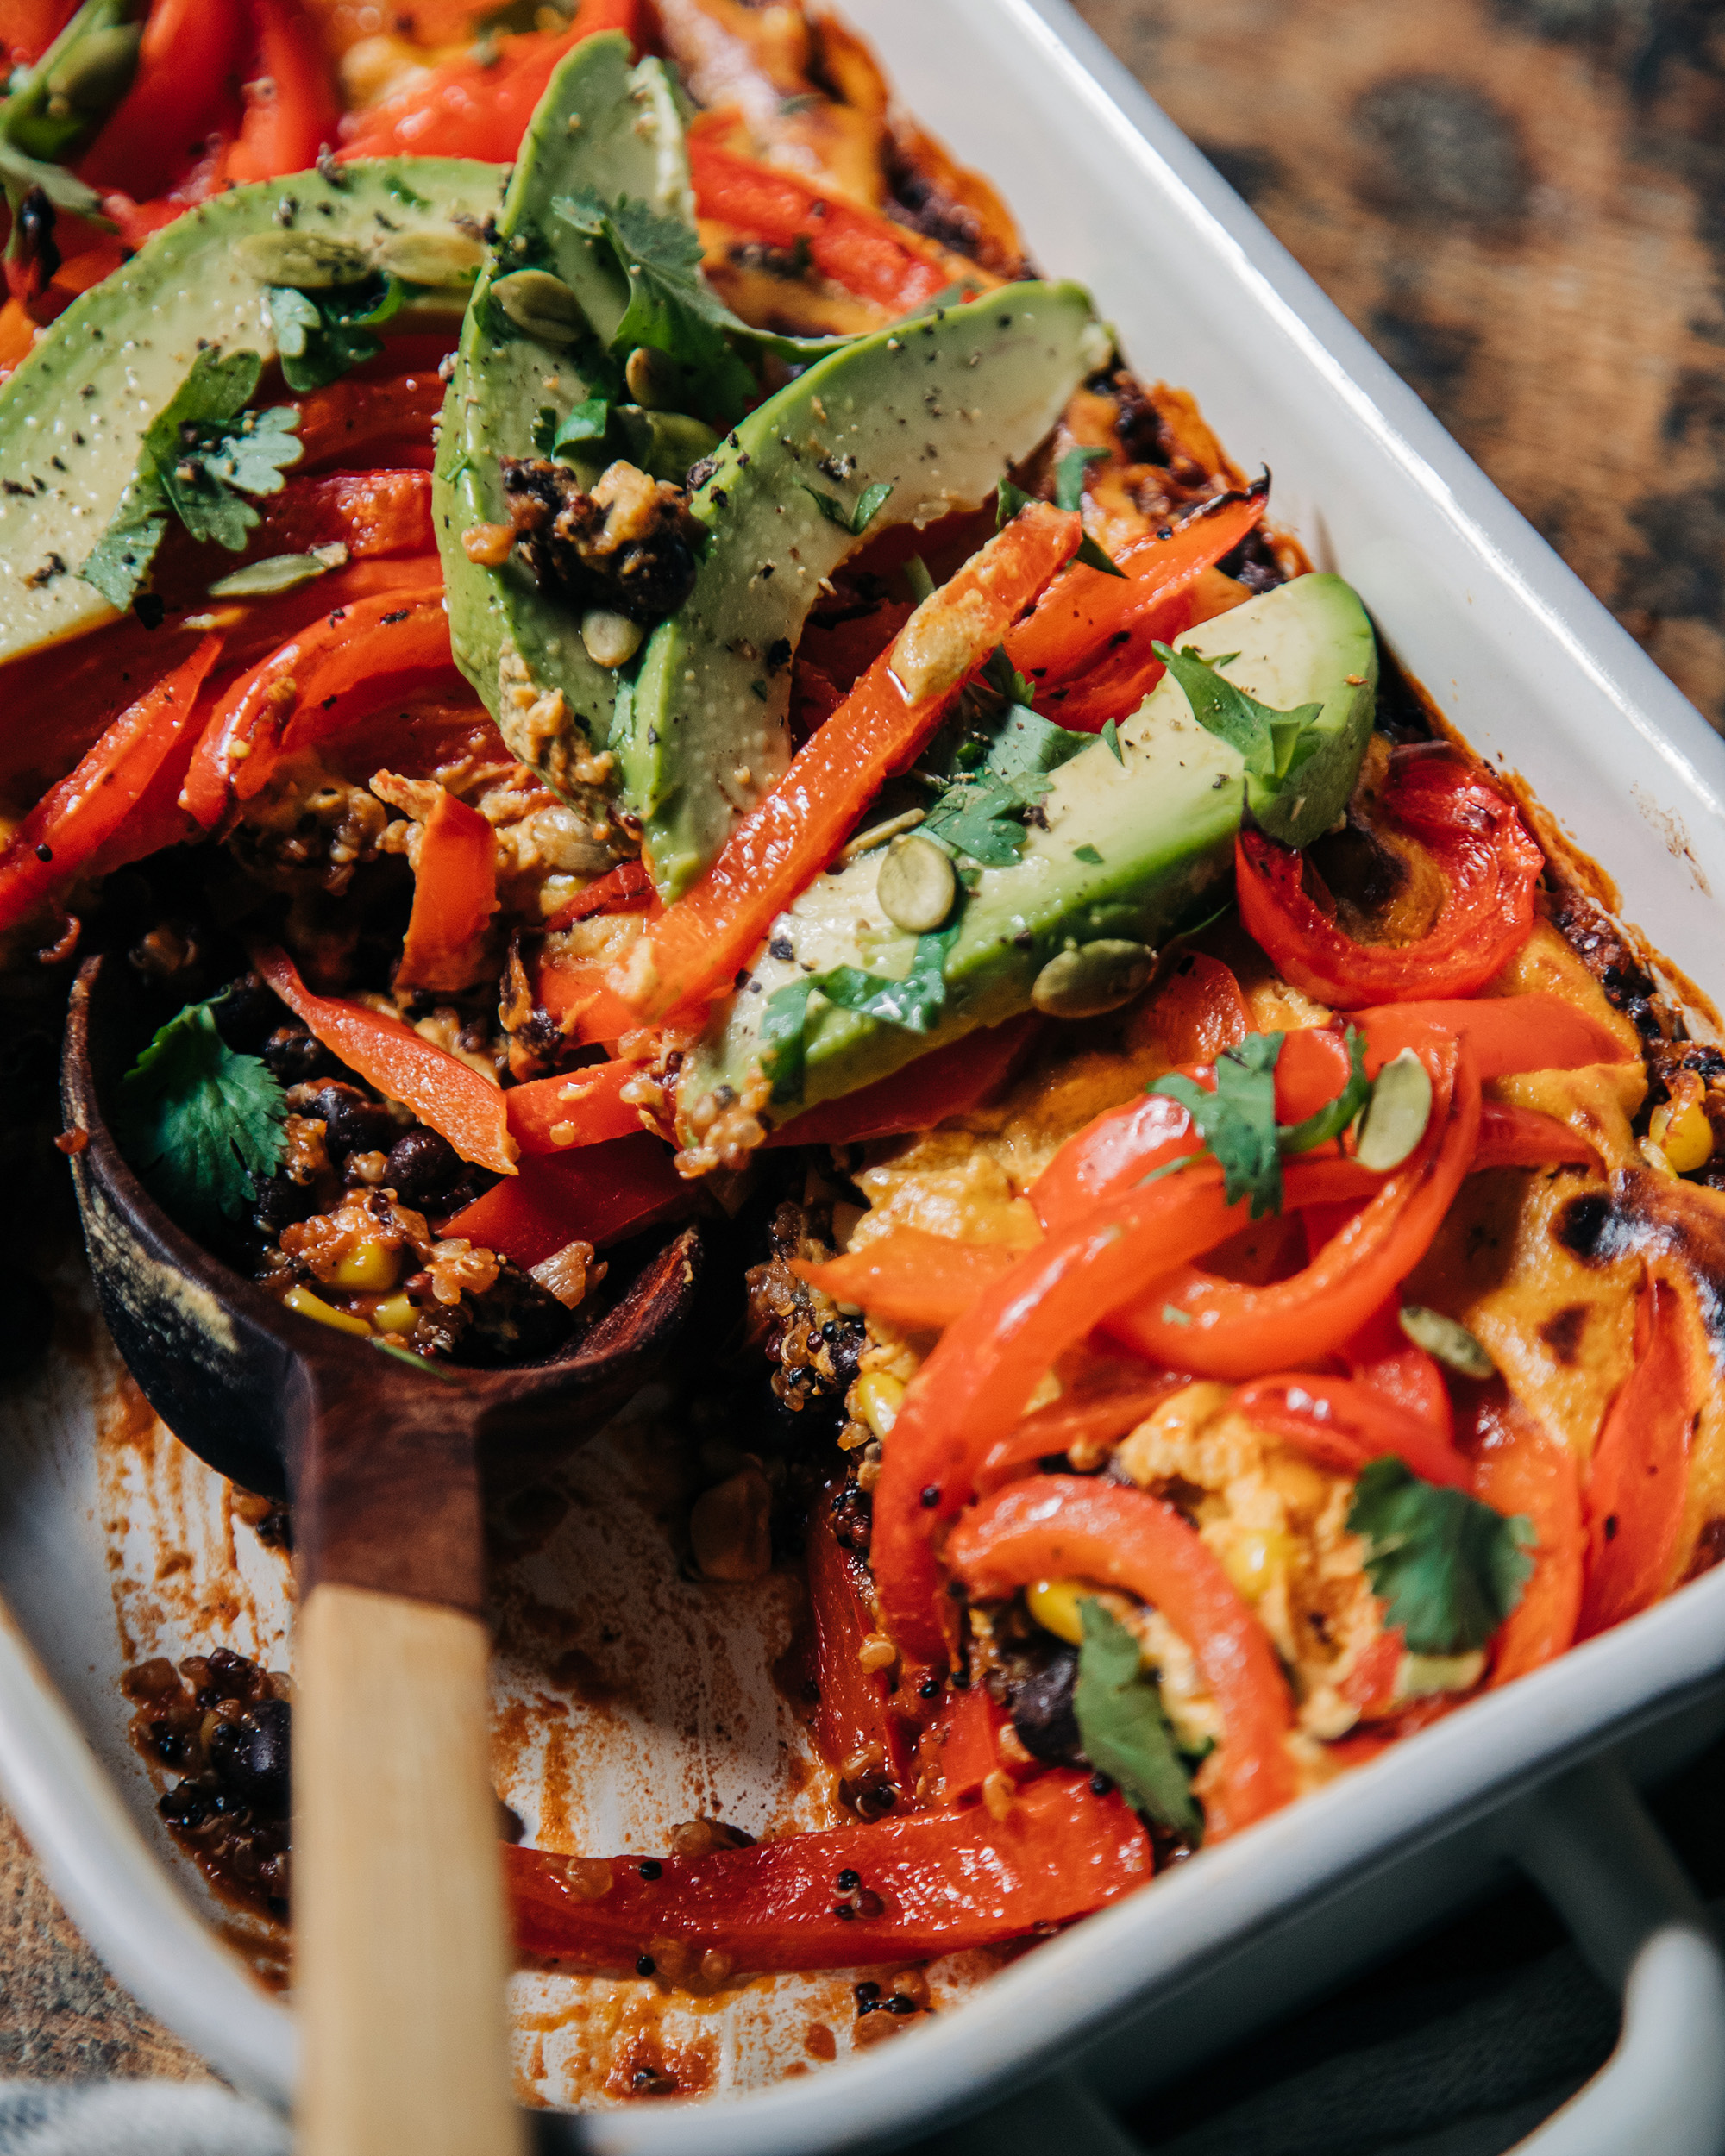 A 3/4 shot of a vegan casserole topped with sautéed bell peppers, avocado, and chopped cilantro. The casserole dish is white and perched on top of a worn wood surface.